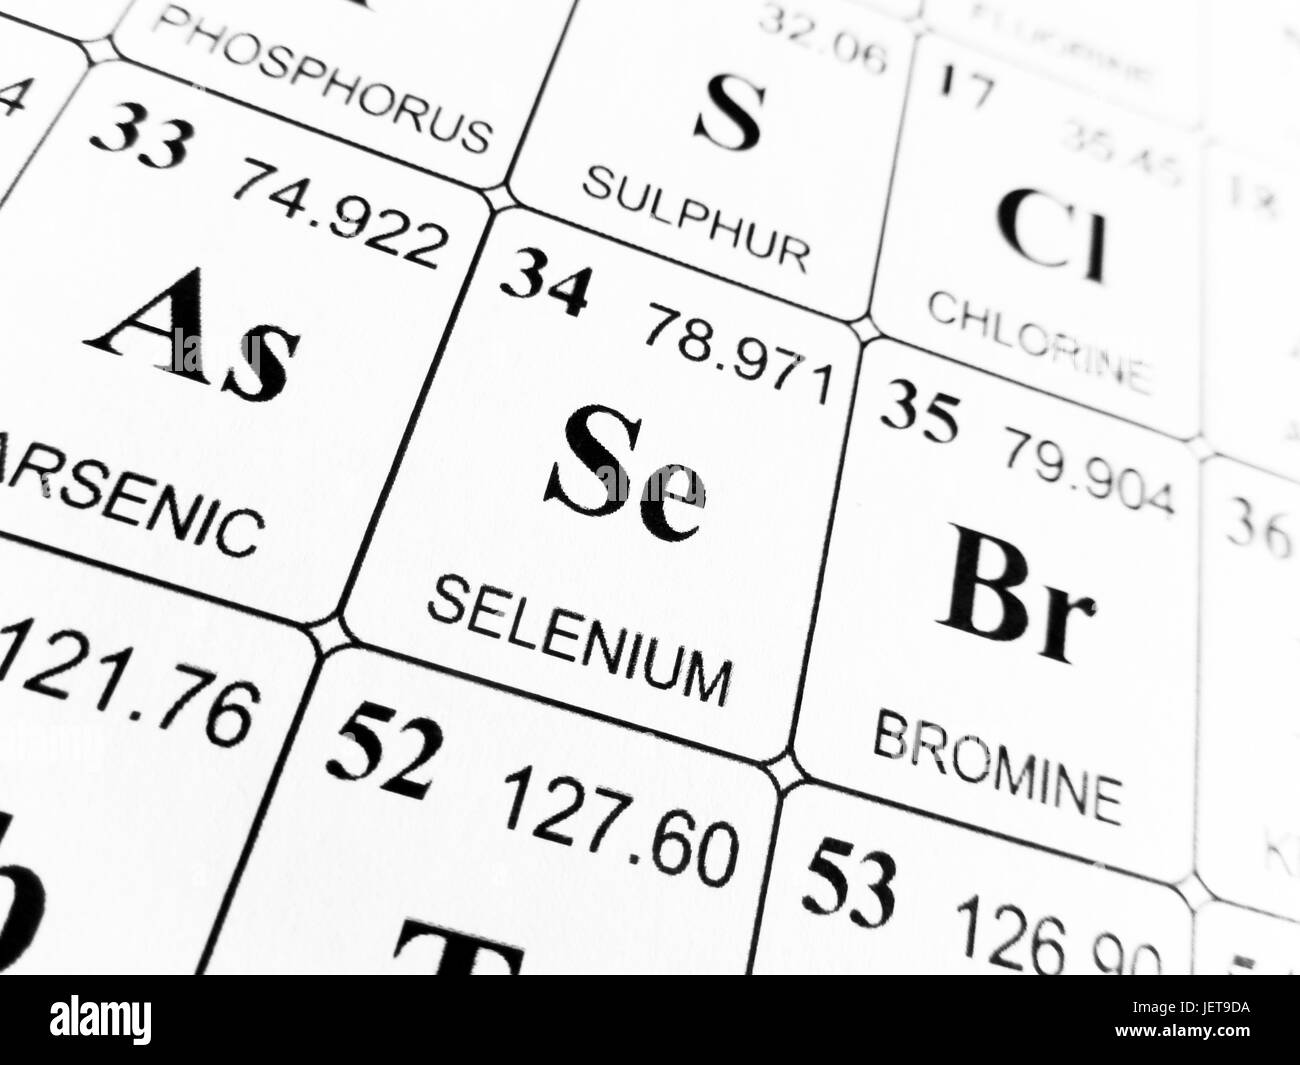 Selenium on the periodic table of the elements stock photo selenium on the periodic table of the elements gamestrikefo Gallery